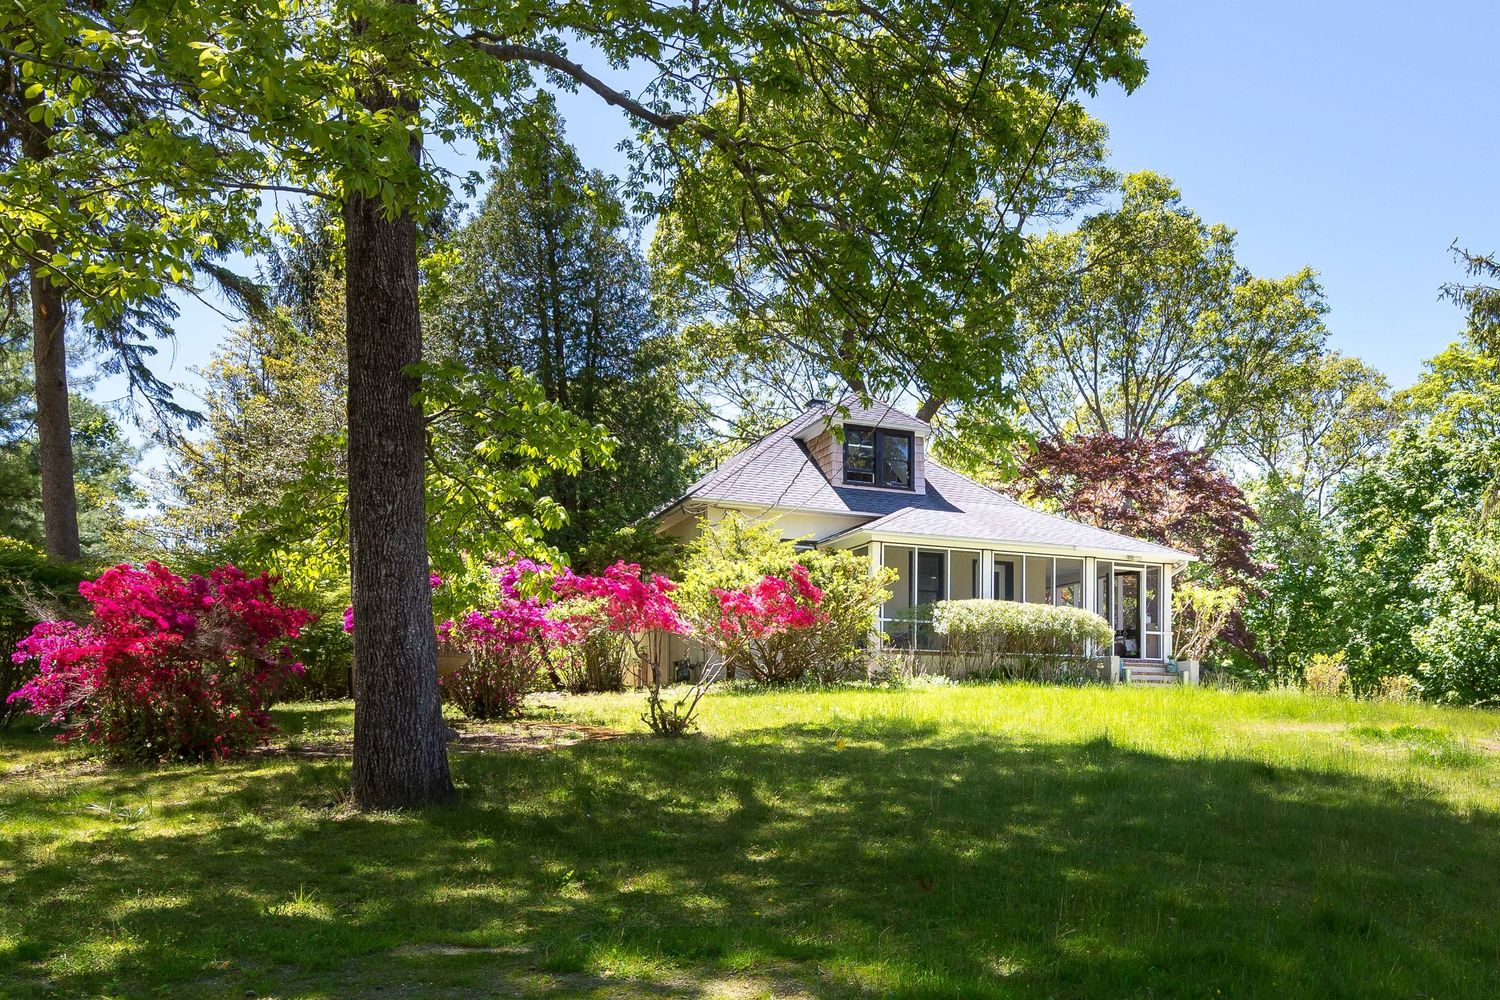 46 Palmer Terrace Sag Harbor, NY 11963